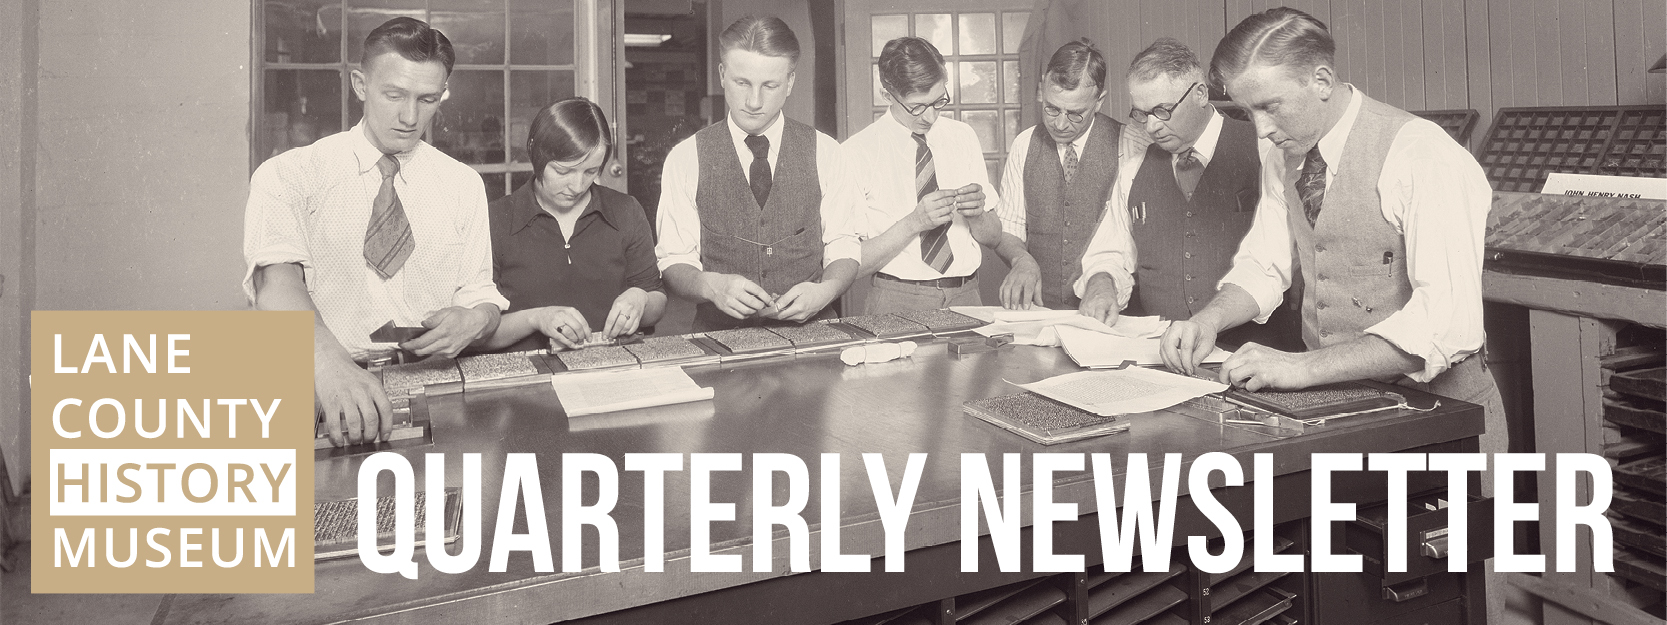 Quarterly Newsletter. Image shows students preparing type by hand.